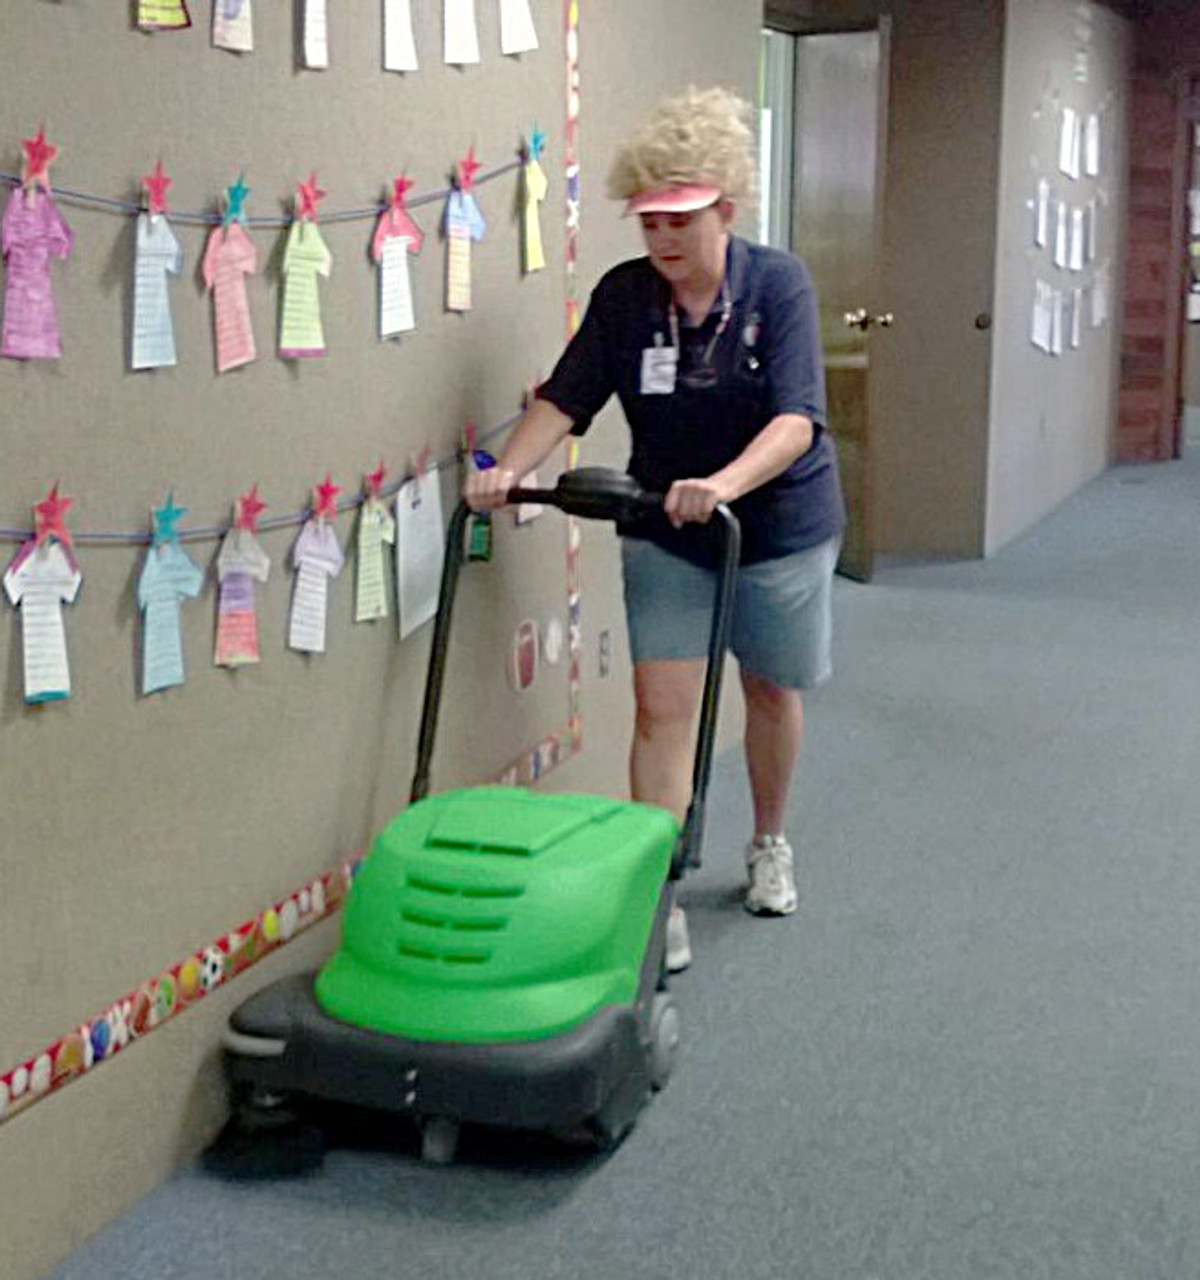 Lightweight and easy to manuever makes the 464 sweeper great for schools.